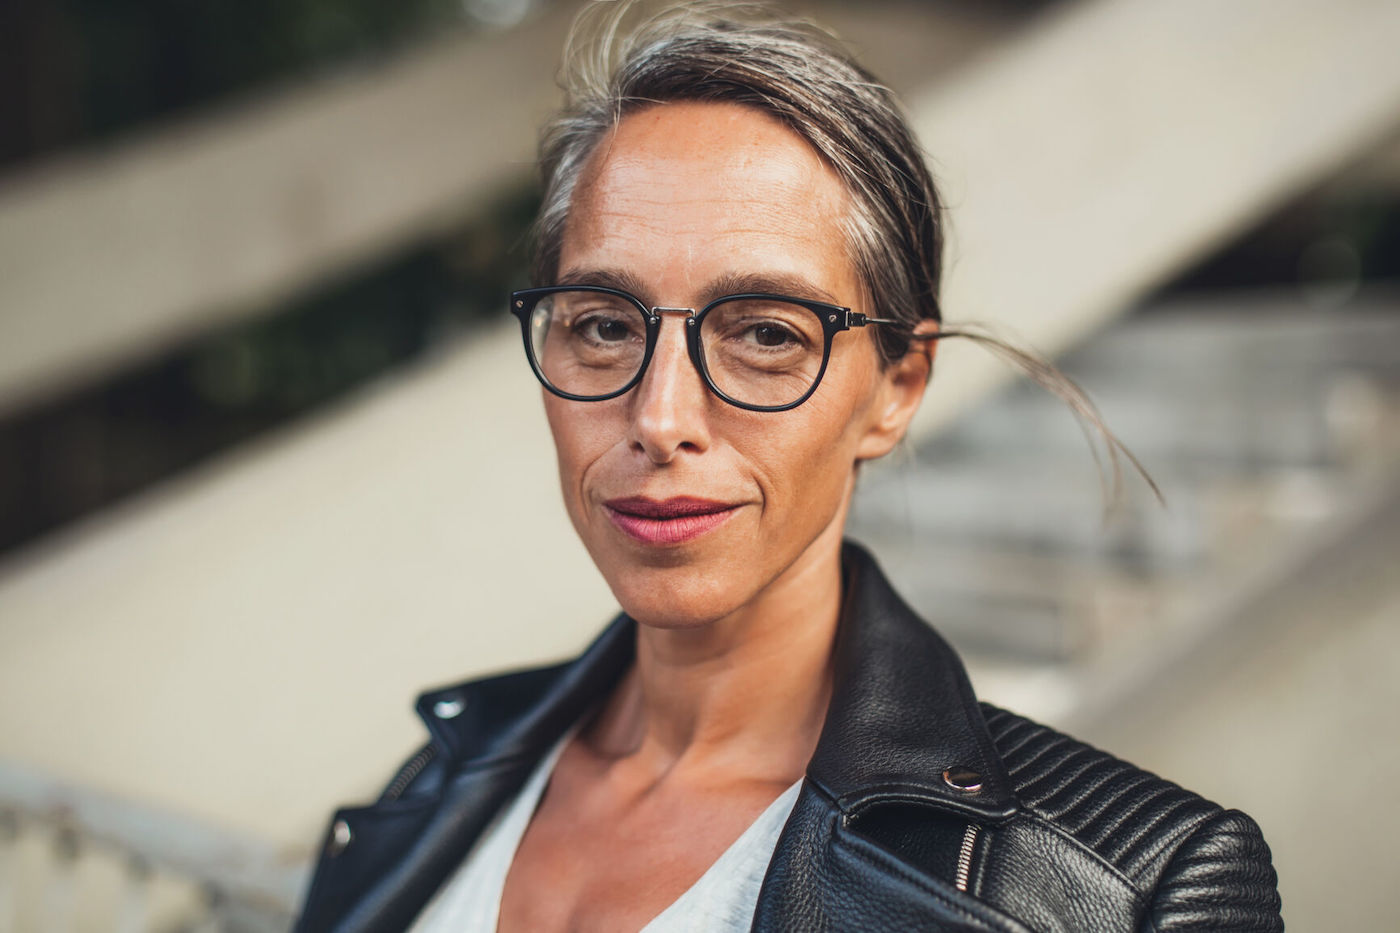 The chief science officer of the Alzheimer's Association recommends cognitive health tests every year